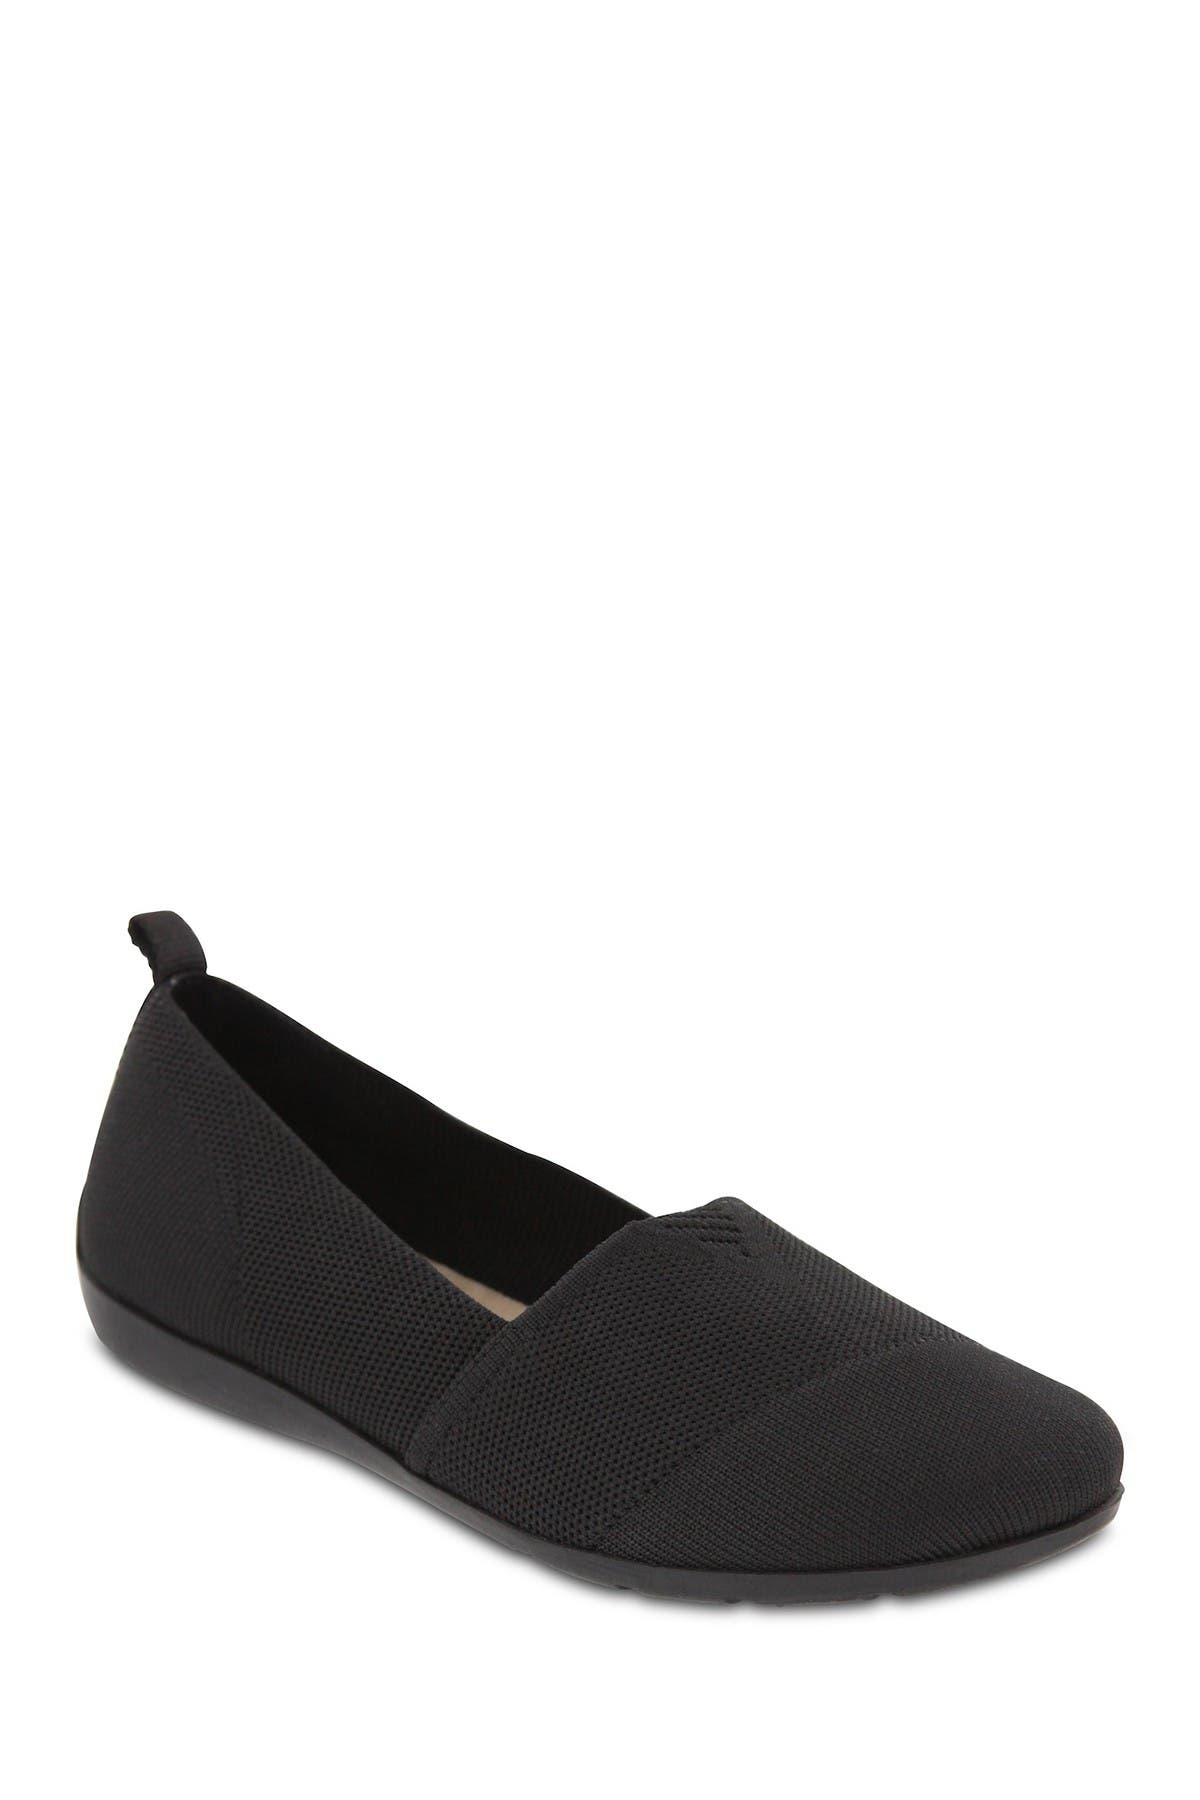 Image of MIA AMORE Darcee Slip-On Flat - Wide Width